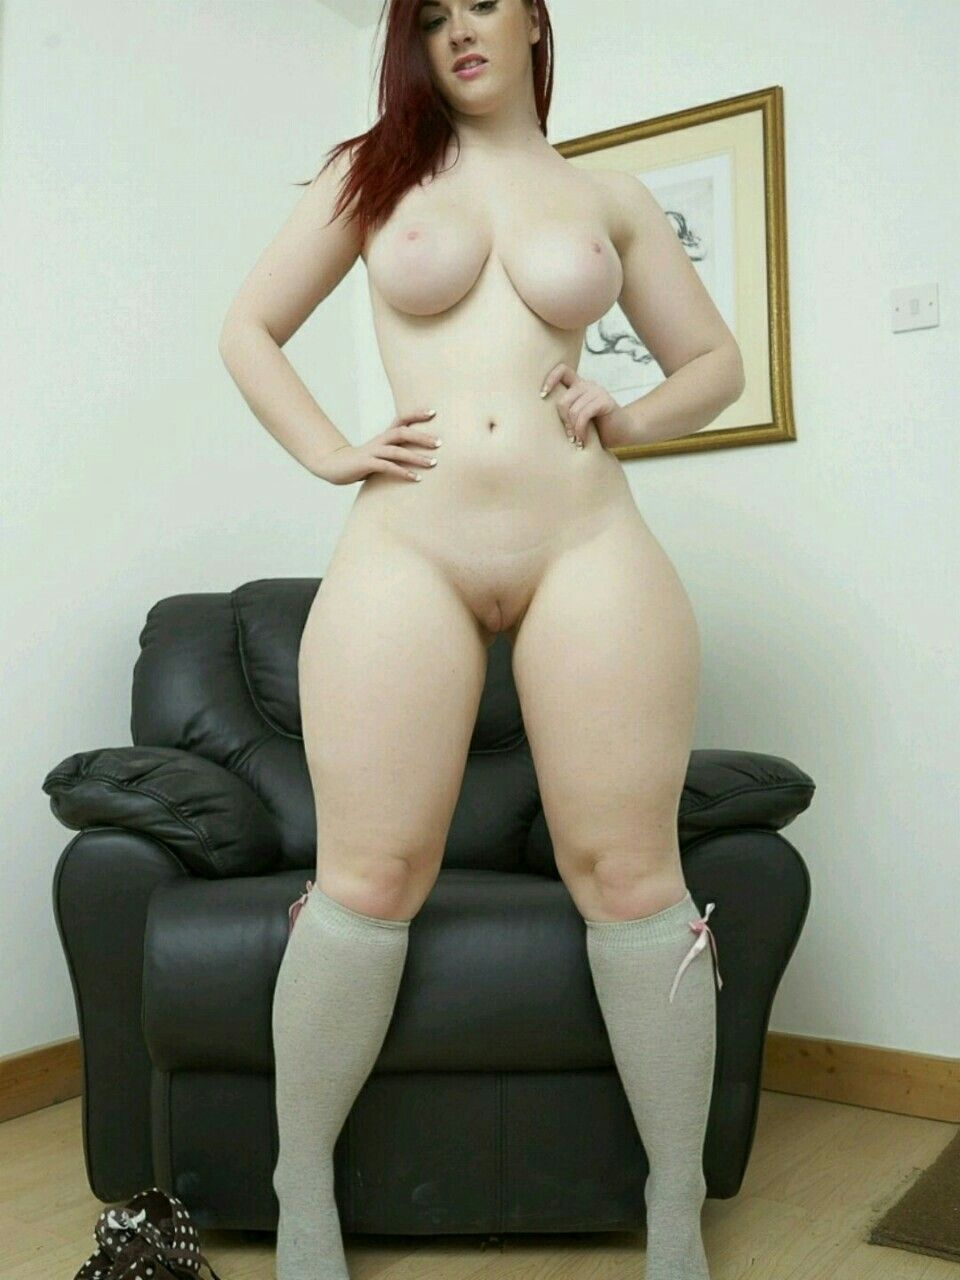 Nude thigh, irakgirls pussy